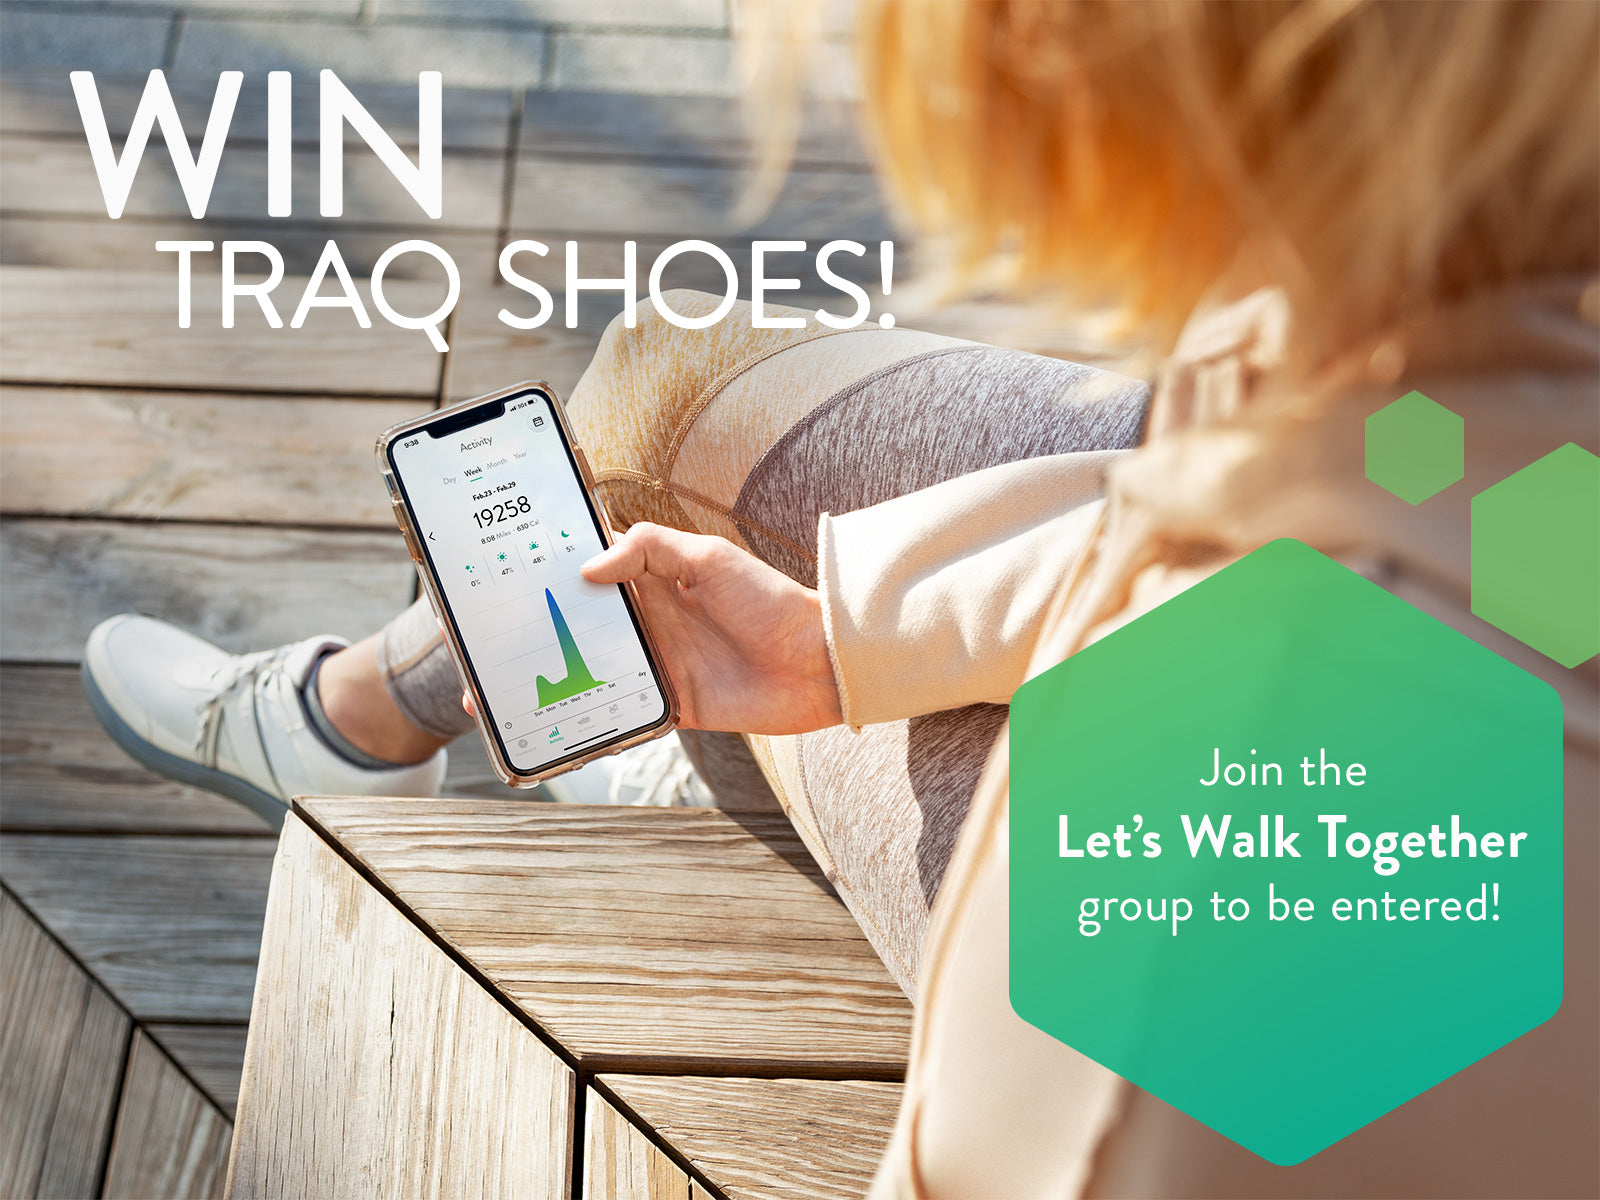 Win Traq Shoes - Join the Let's Walk Together group on the Traq App